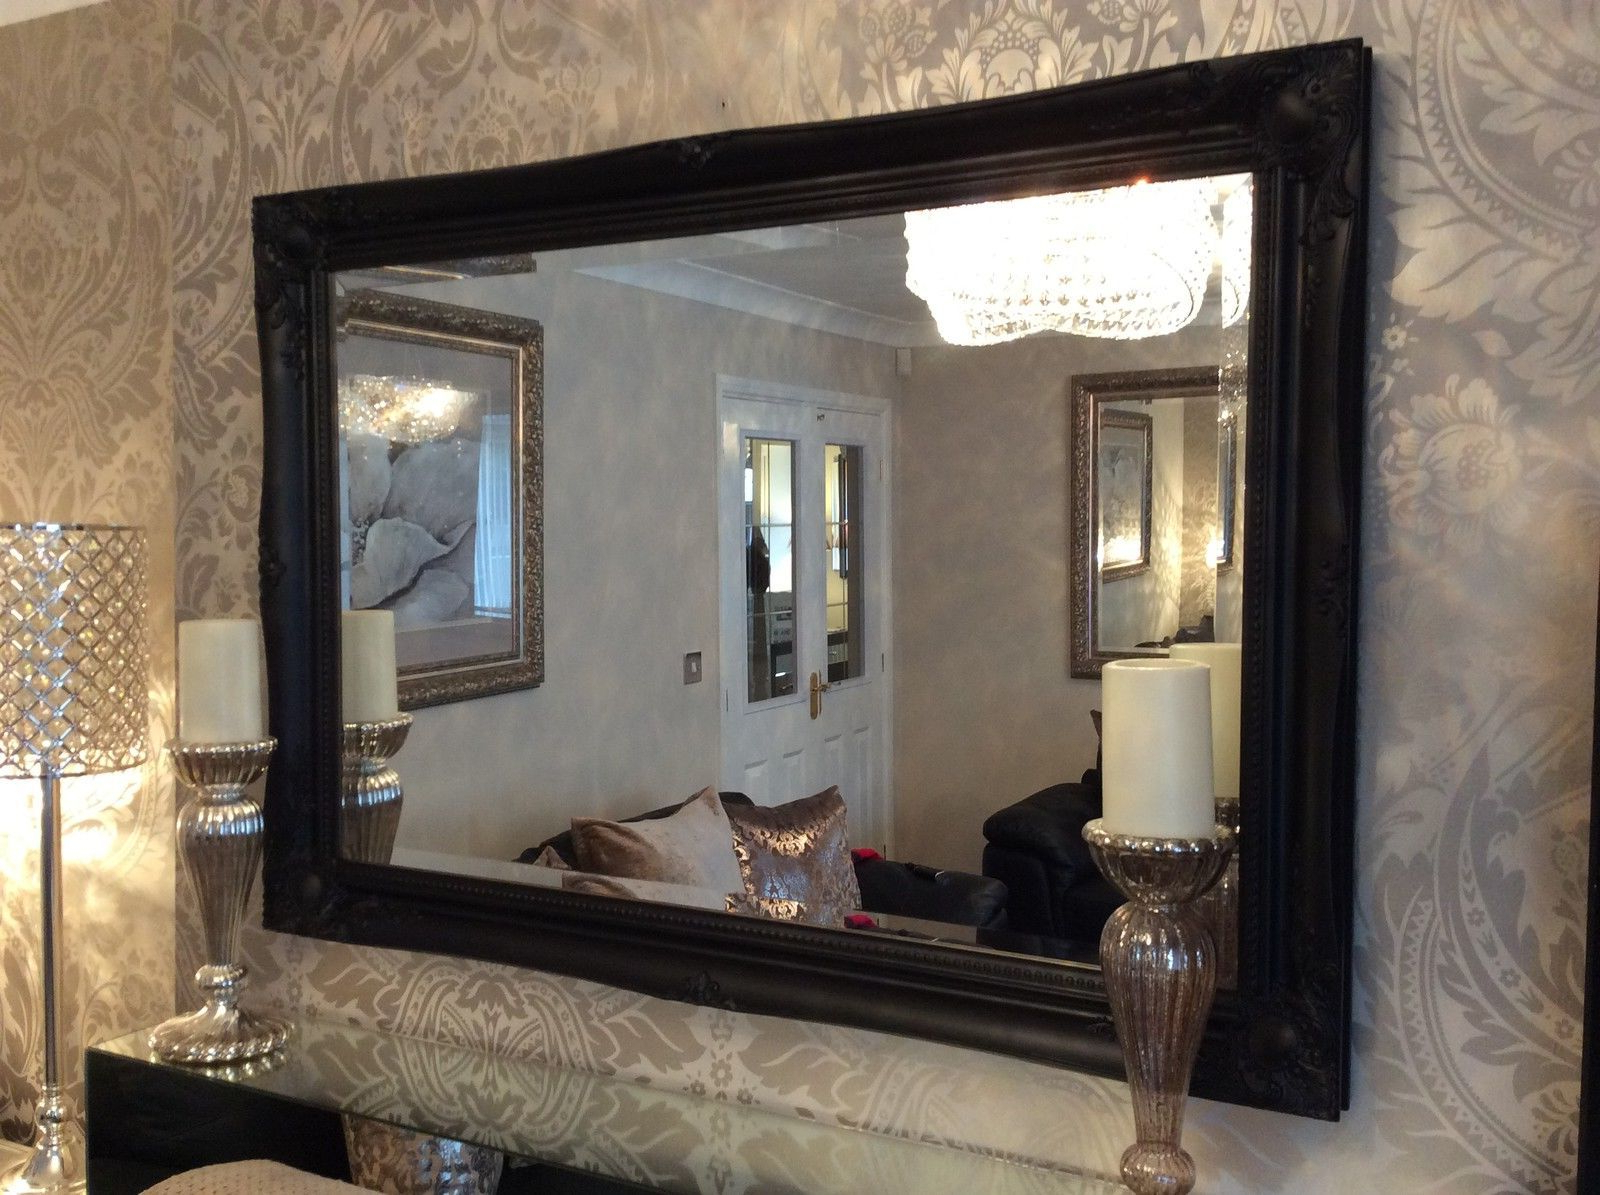 Large Black Stunning Decorative Swept Wall Mirror – Bevelled Glass *new* Intended For Latest Decorative Large Wall Mirrors (Gallery 8 of 20)